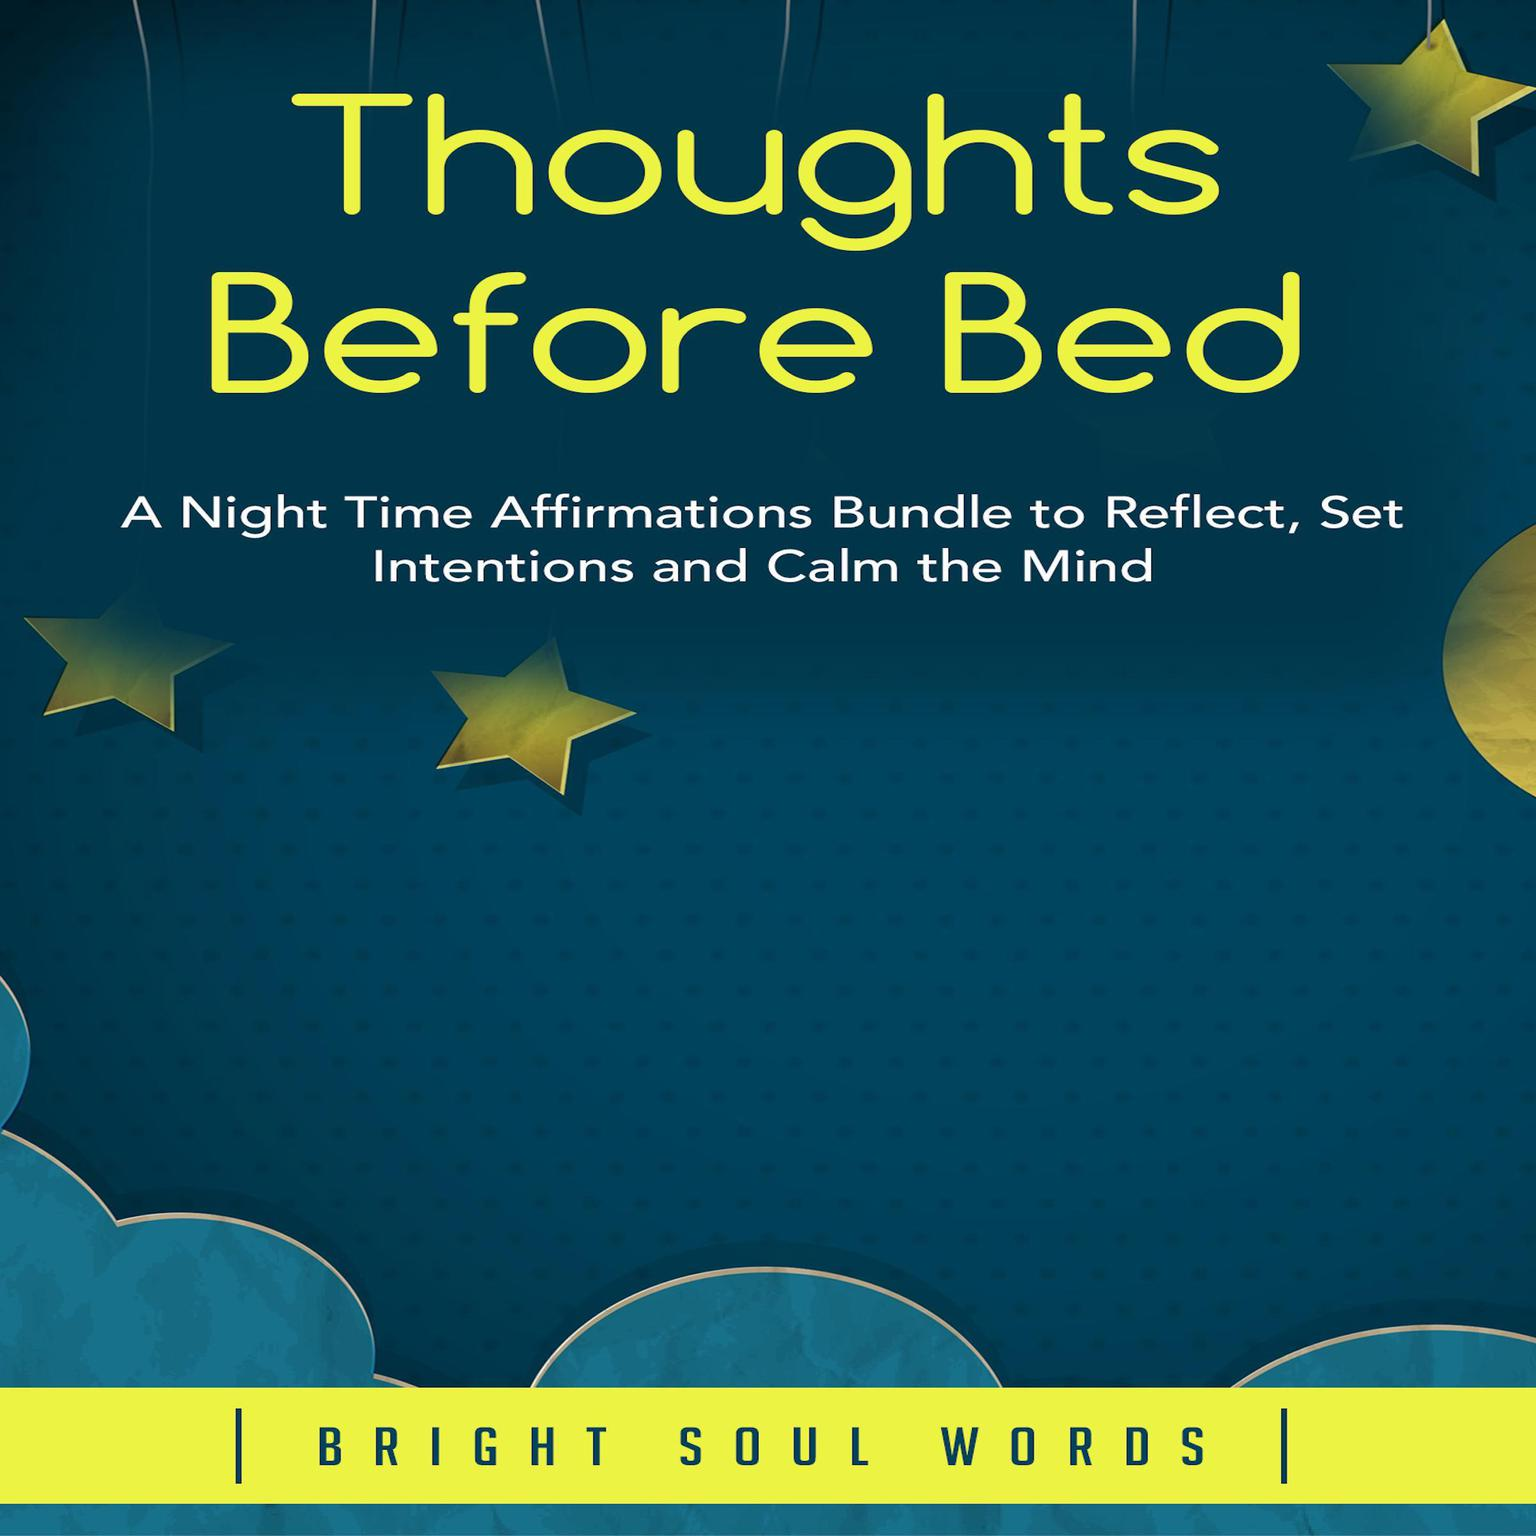 Thoughts Before Bed: A Night Time Affirmations Bundle to Reflect, Set Intentions and Calm the Mind Audiobook, by Bright Soul Words